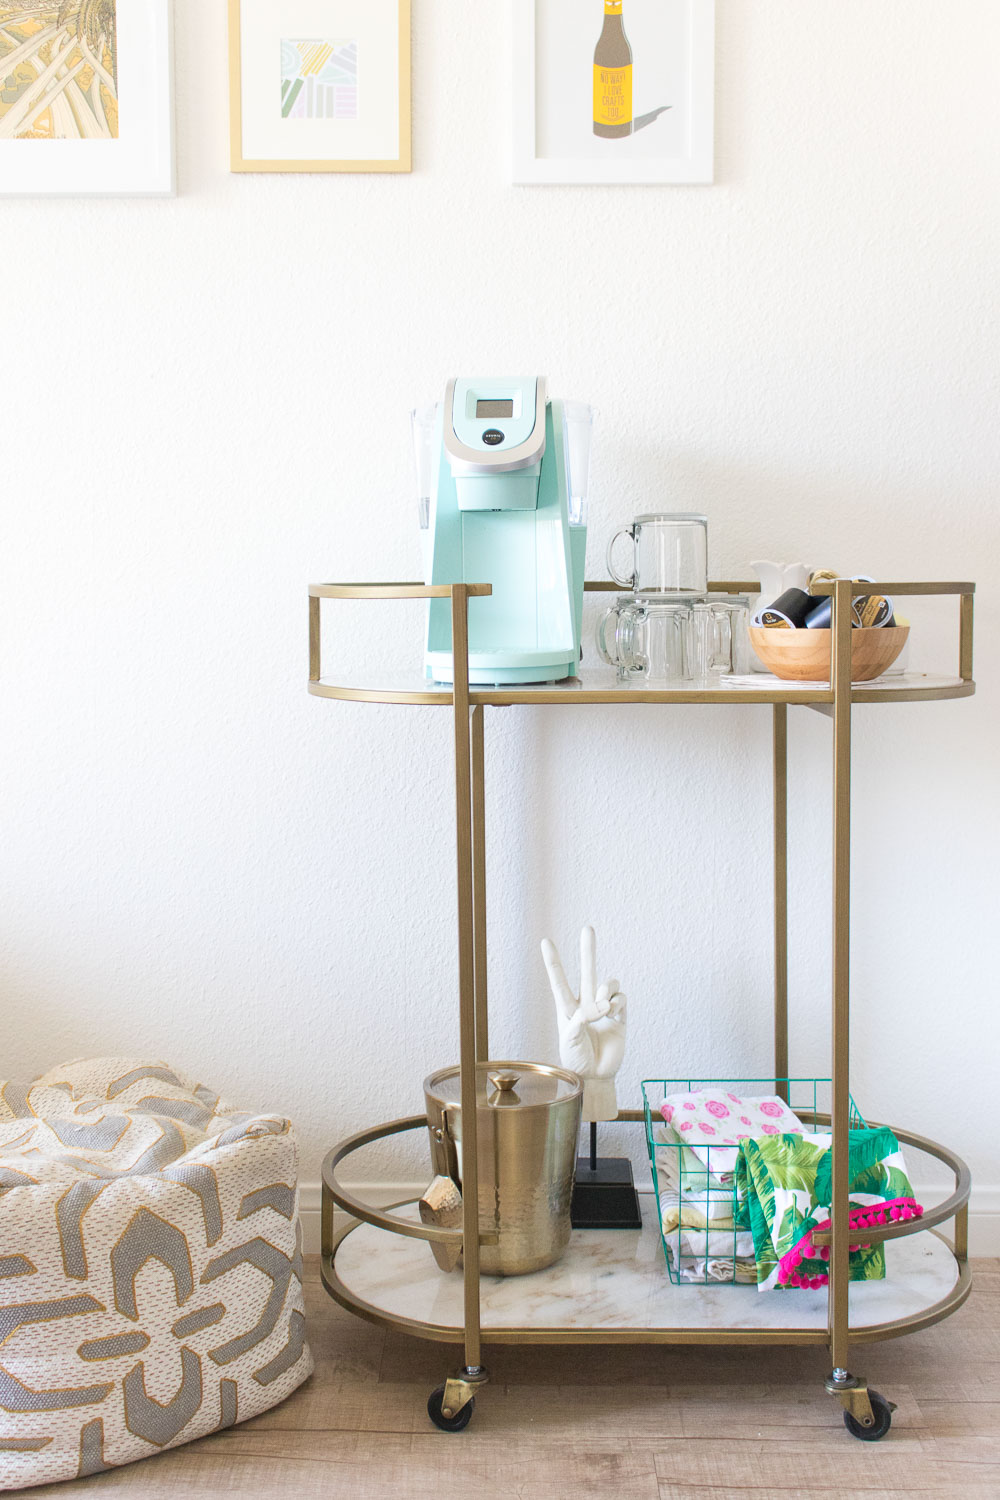 Double Duty: From Bar Cart to Coffee Cart | Club Crafted